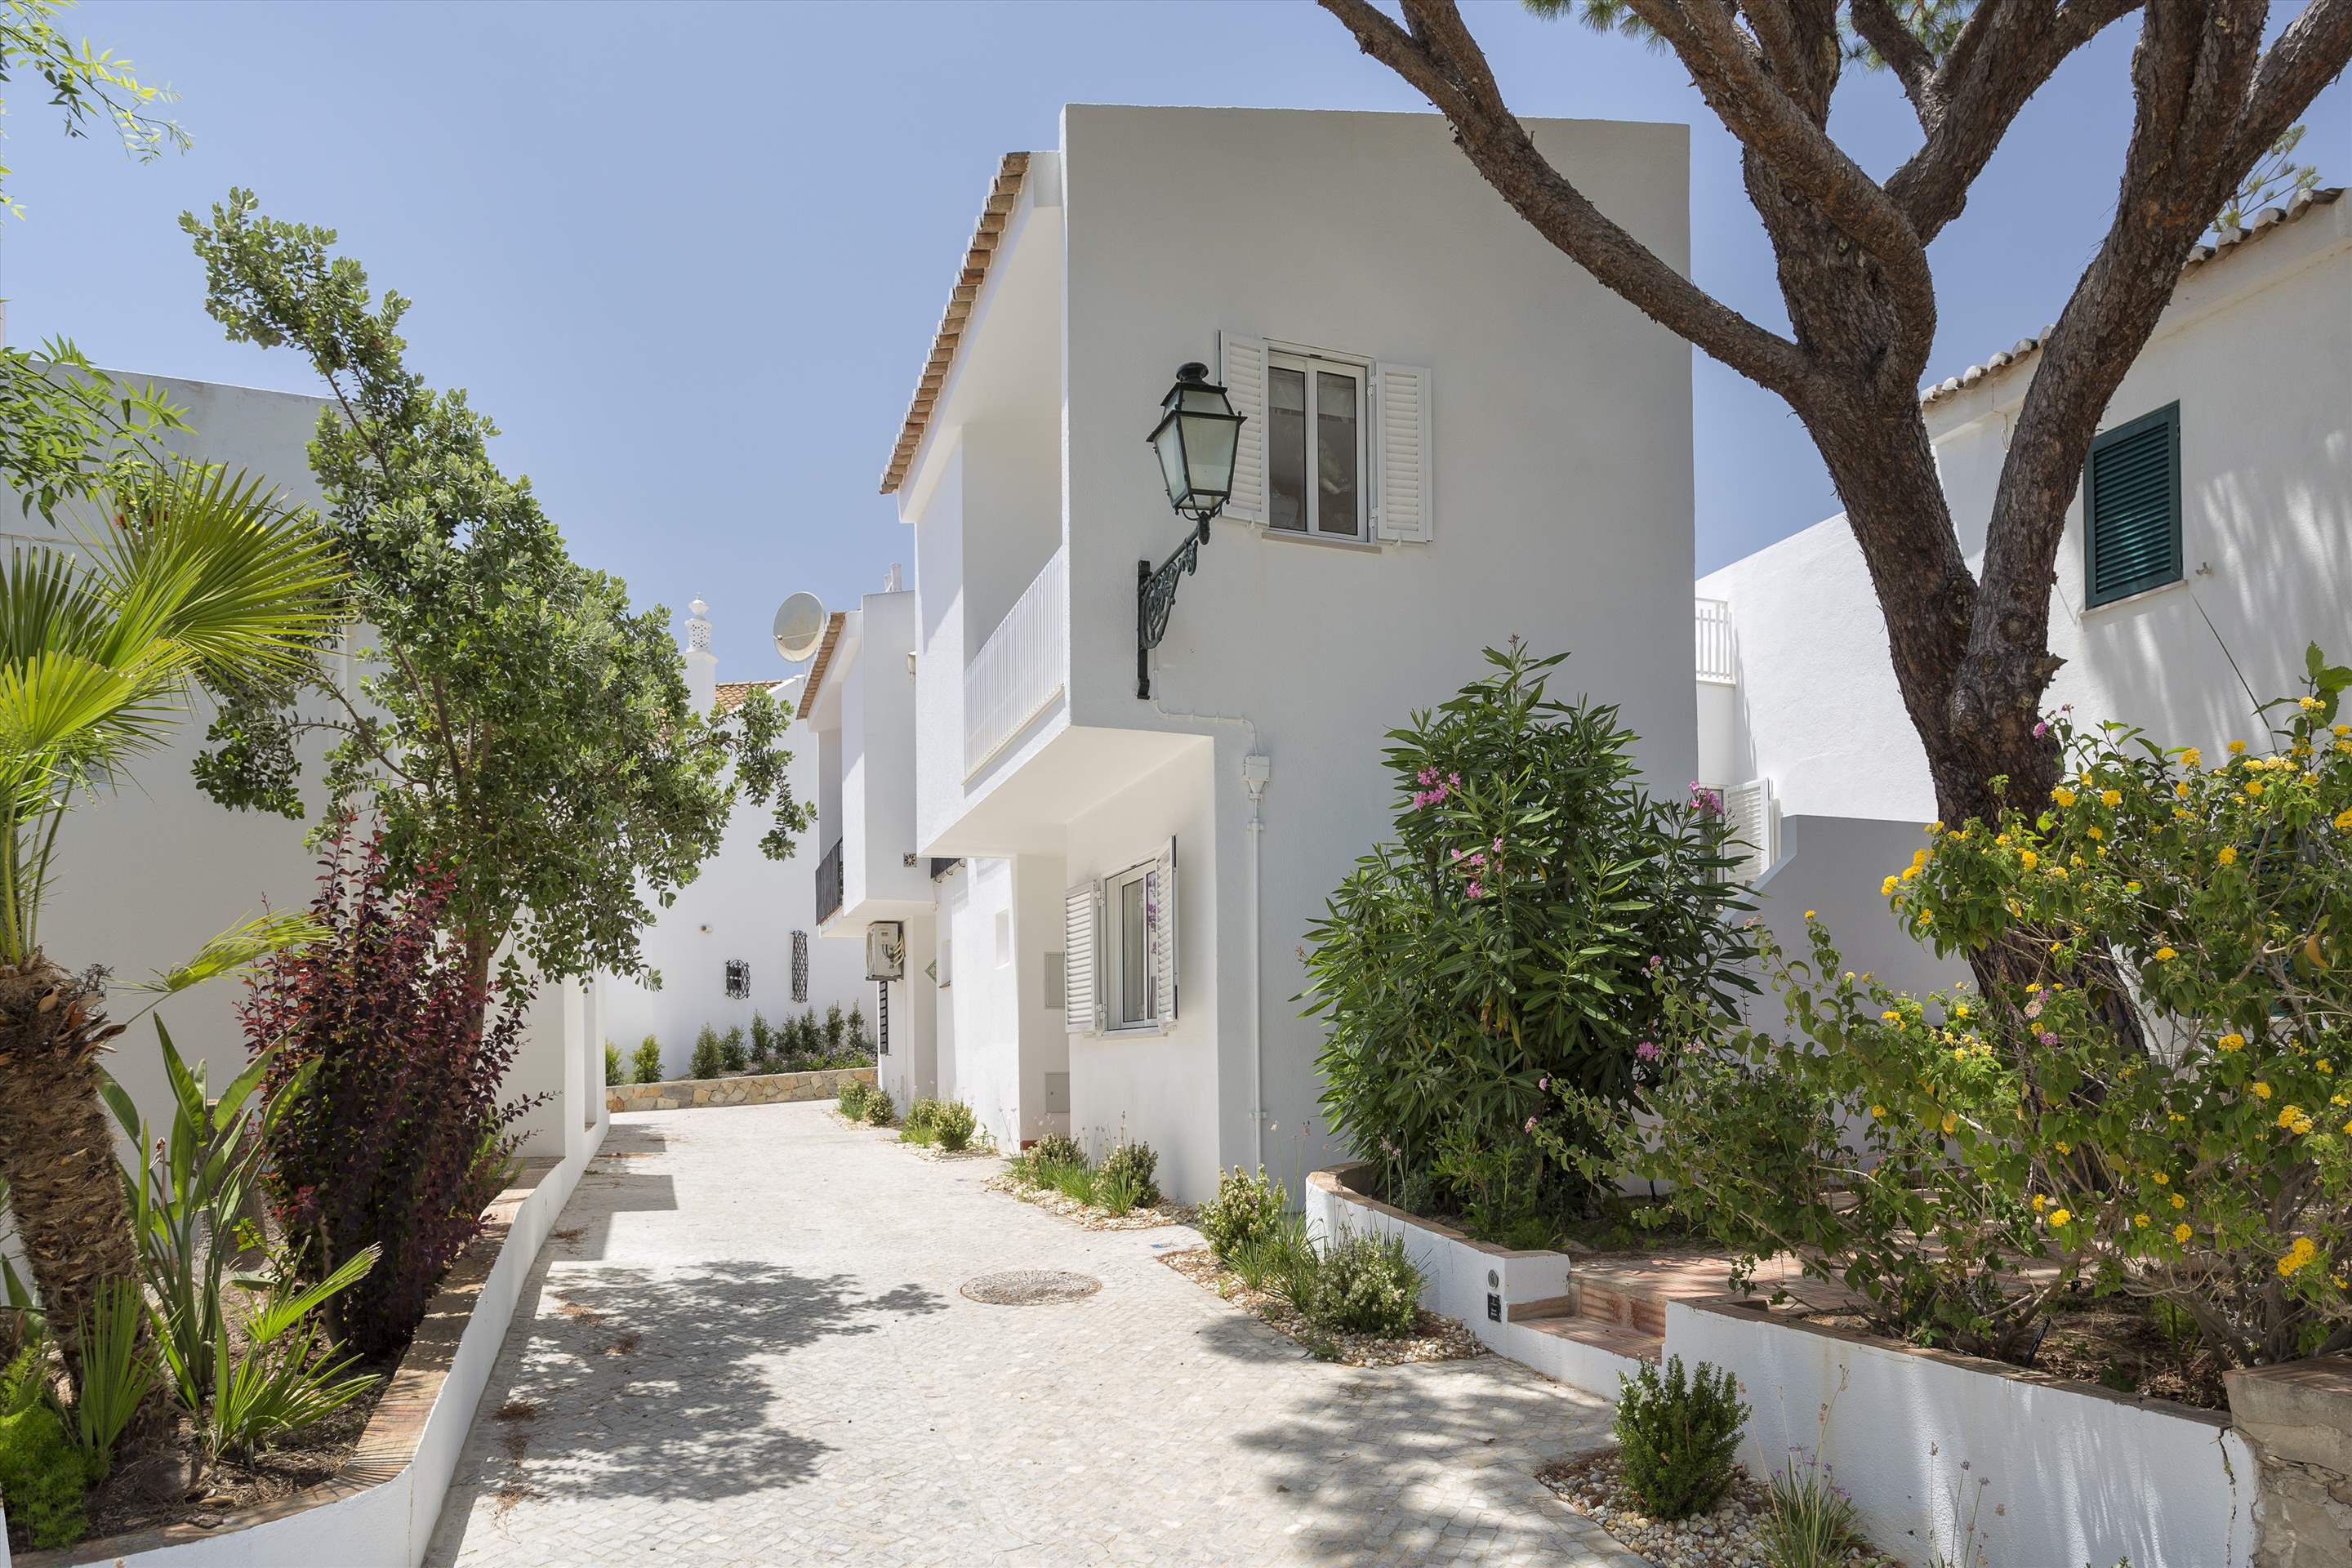 Villa Clemente, 2 bedroom villa in Vale do Lobo, Algarve Photo #6